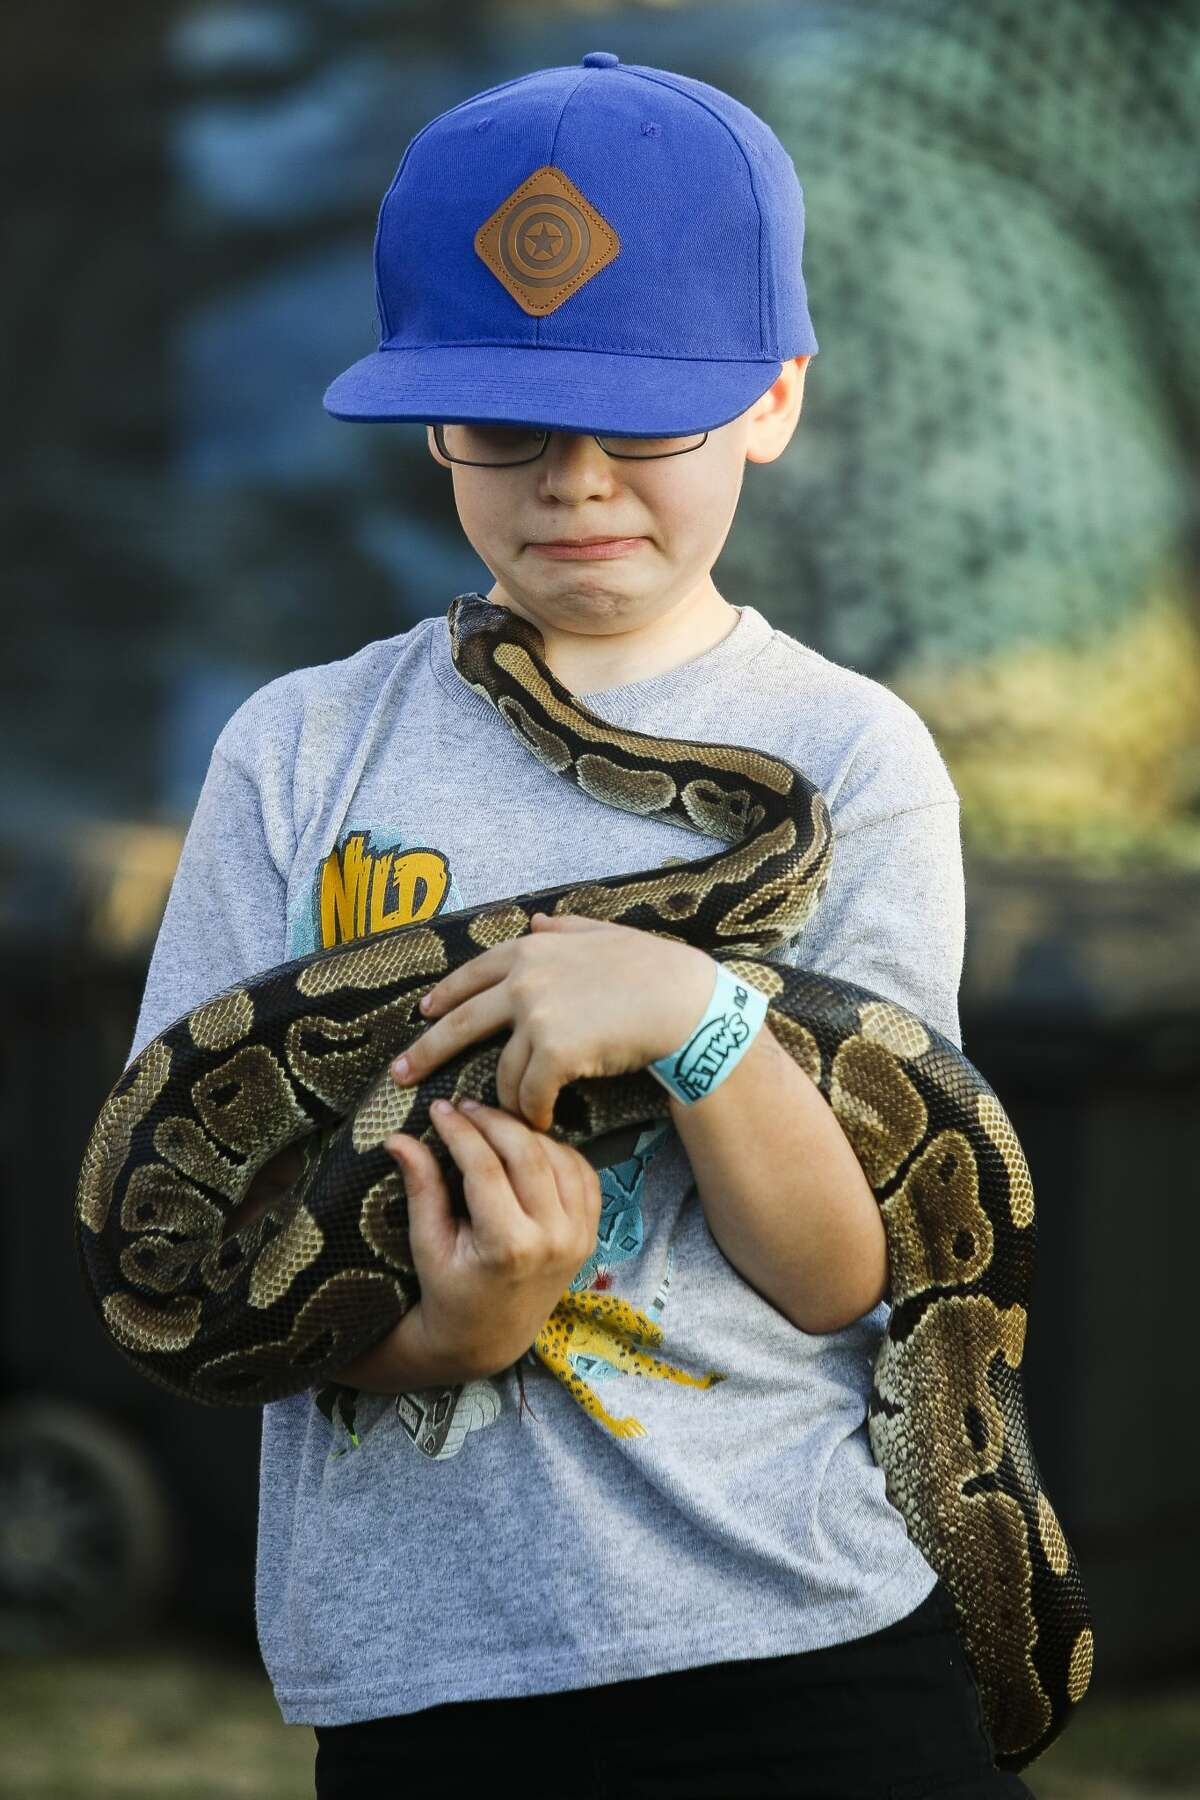 Alex Pelliccia of Midland, 8, holds a smaller python during Danny Conner's Reptile Adventures show on Tuesday, Aug. 13, 2019 at the Midland County Fair. (Katy Kildee/kkildee@mdn.net)